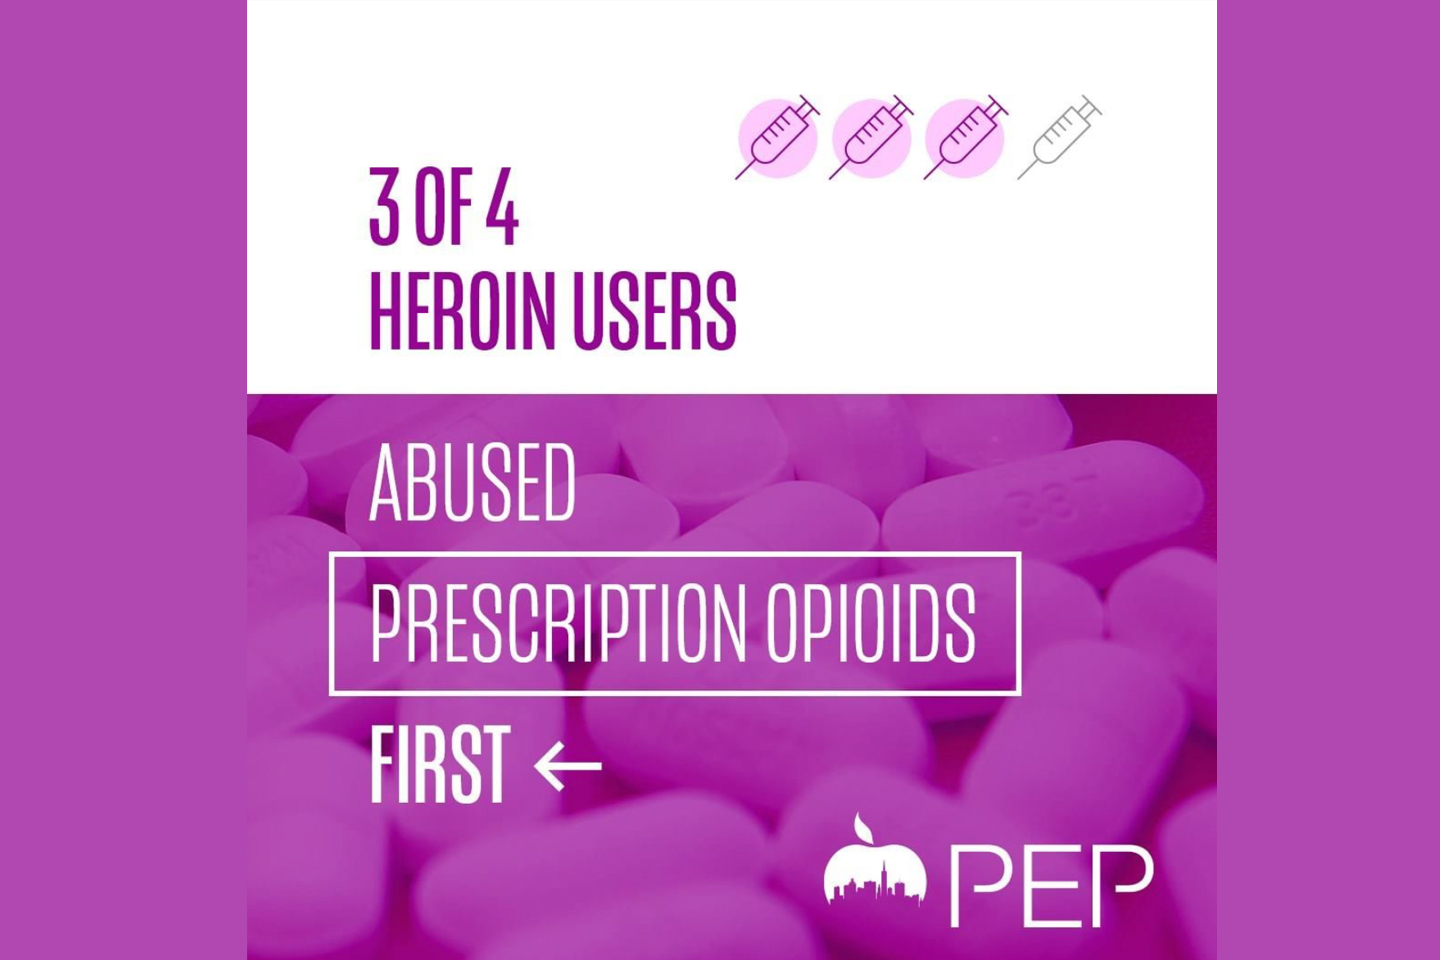 Heroin addiction often starts with prescription opioid misuse.